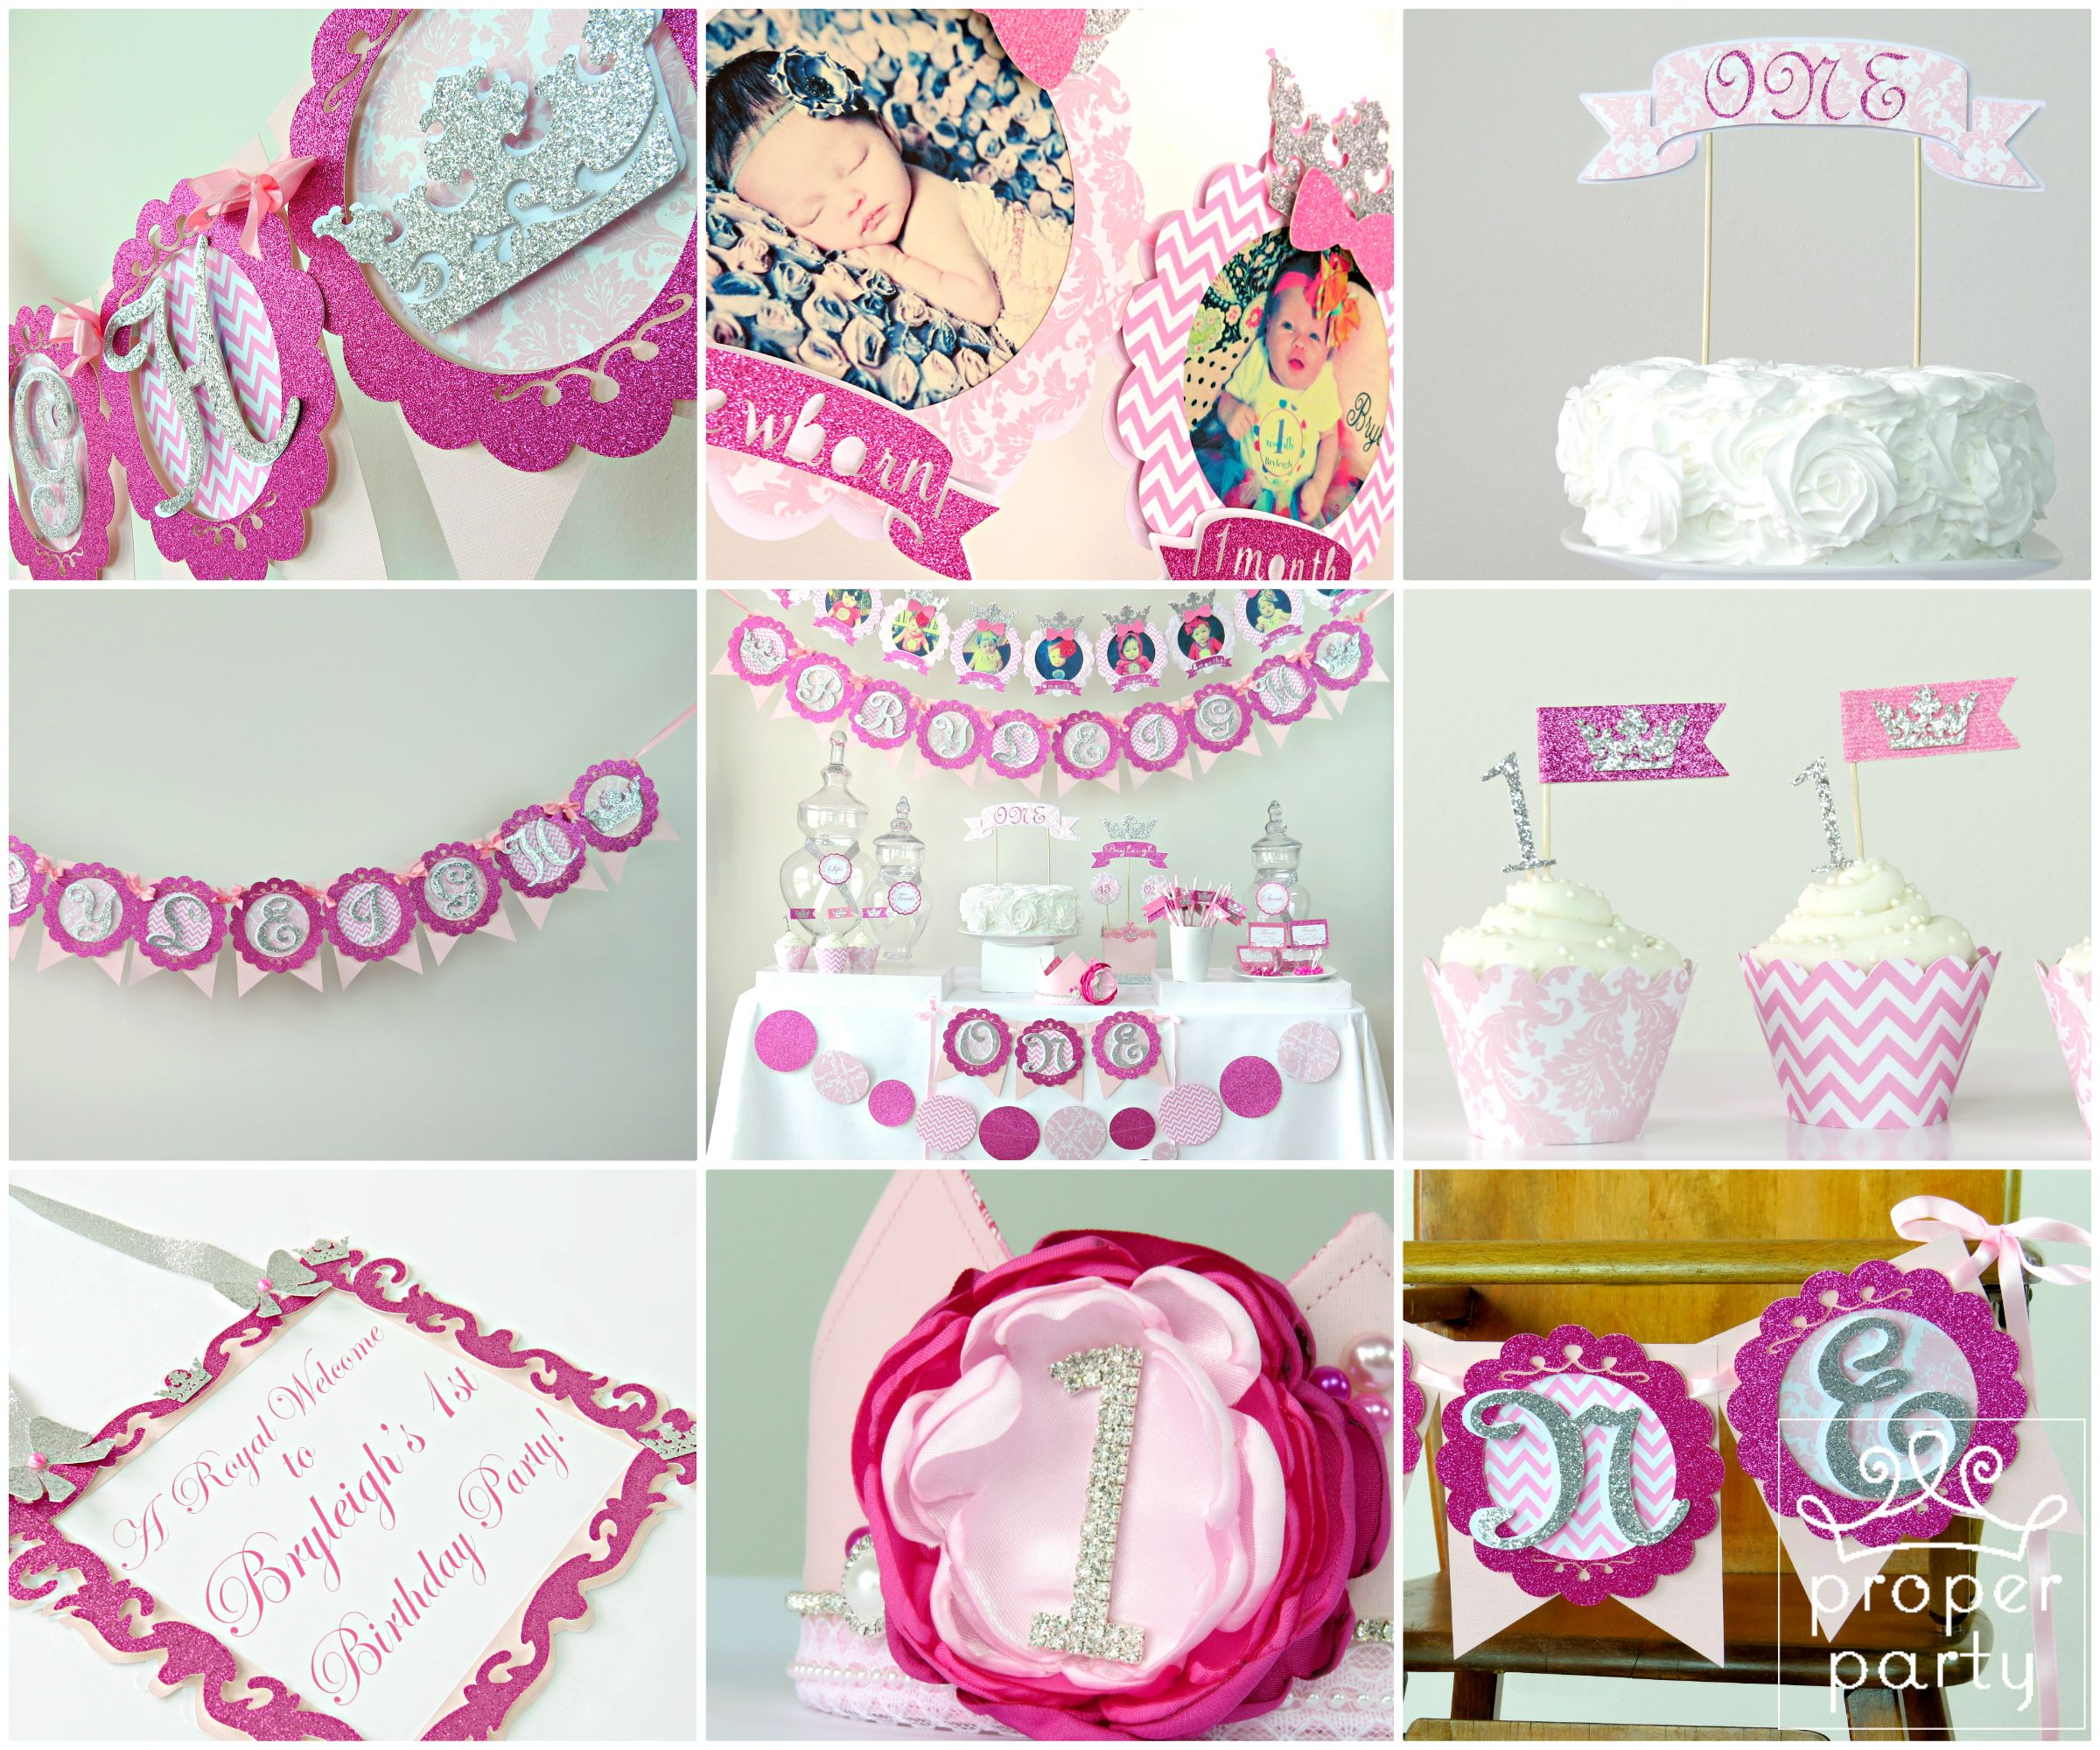 Girls First Birthday Party Decorations by Proper Party on Etsy ...